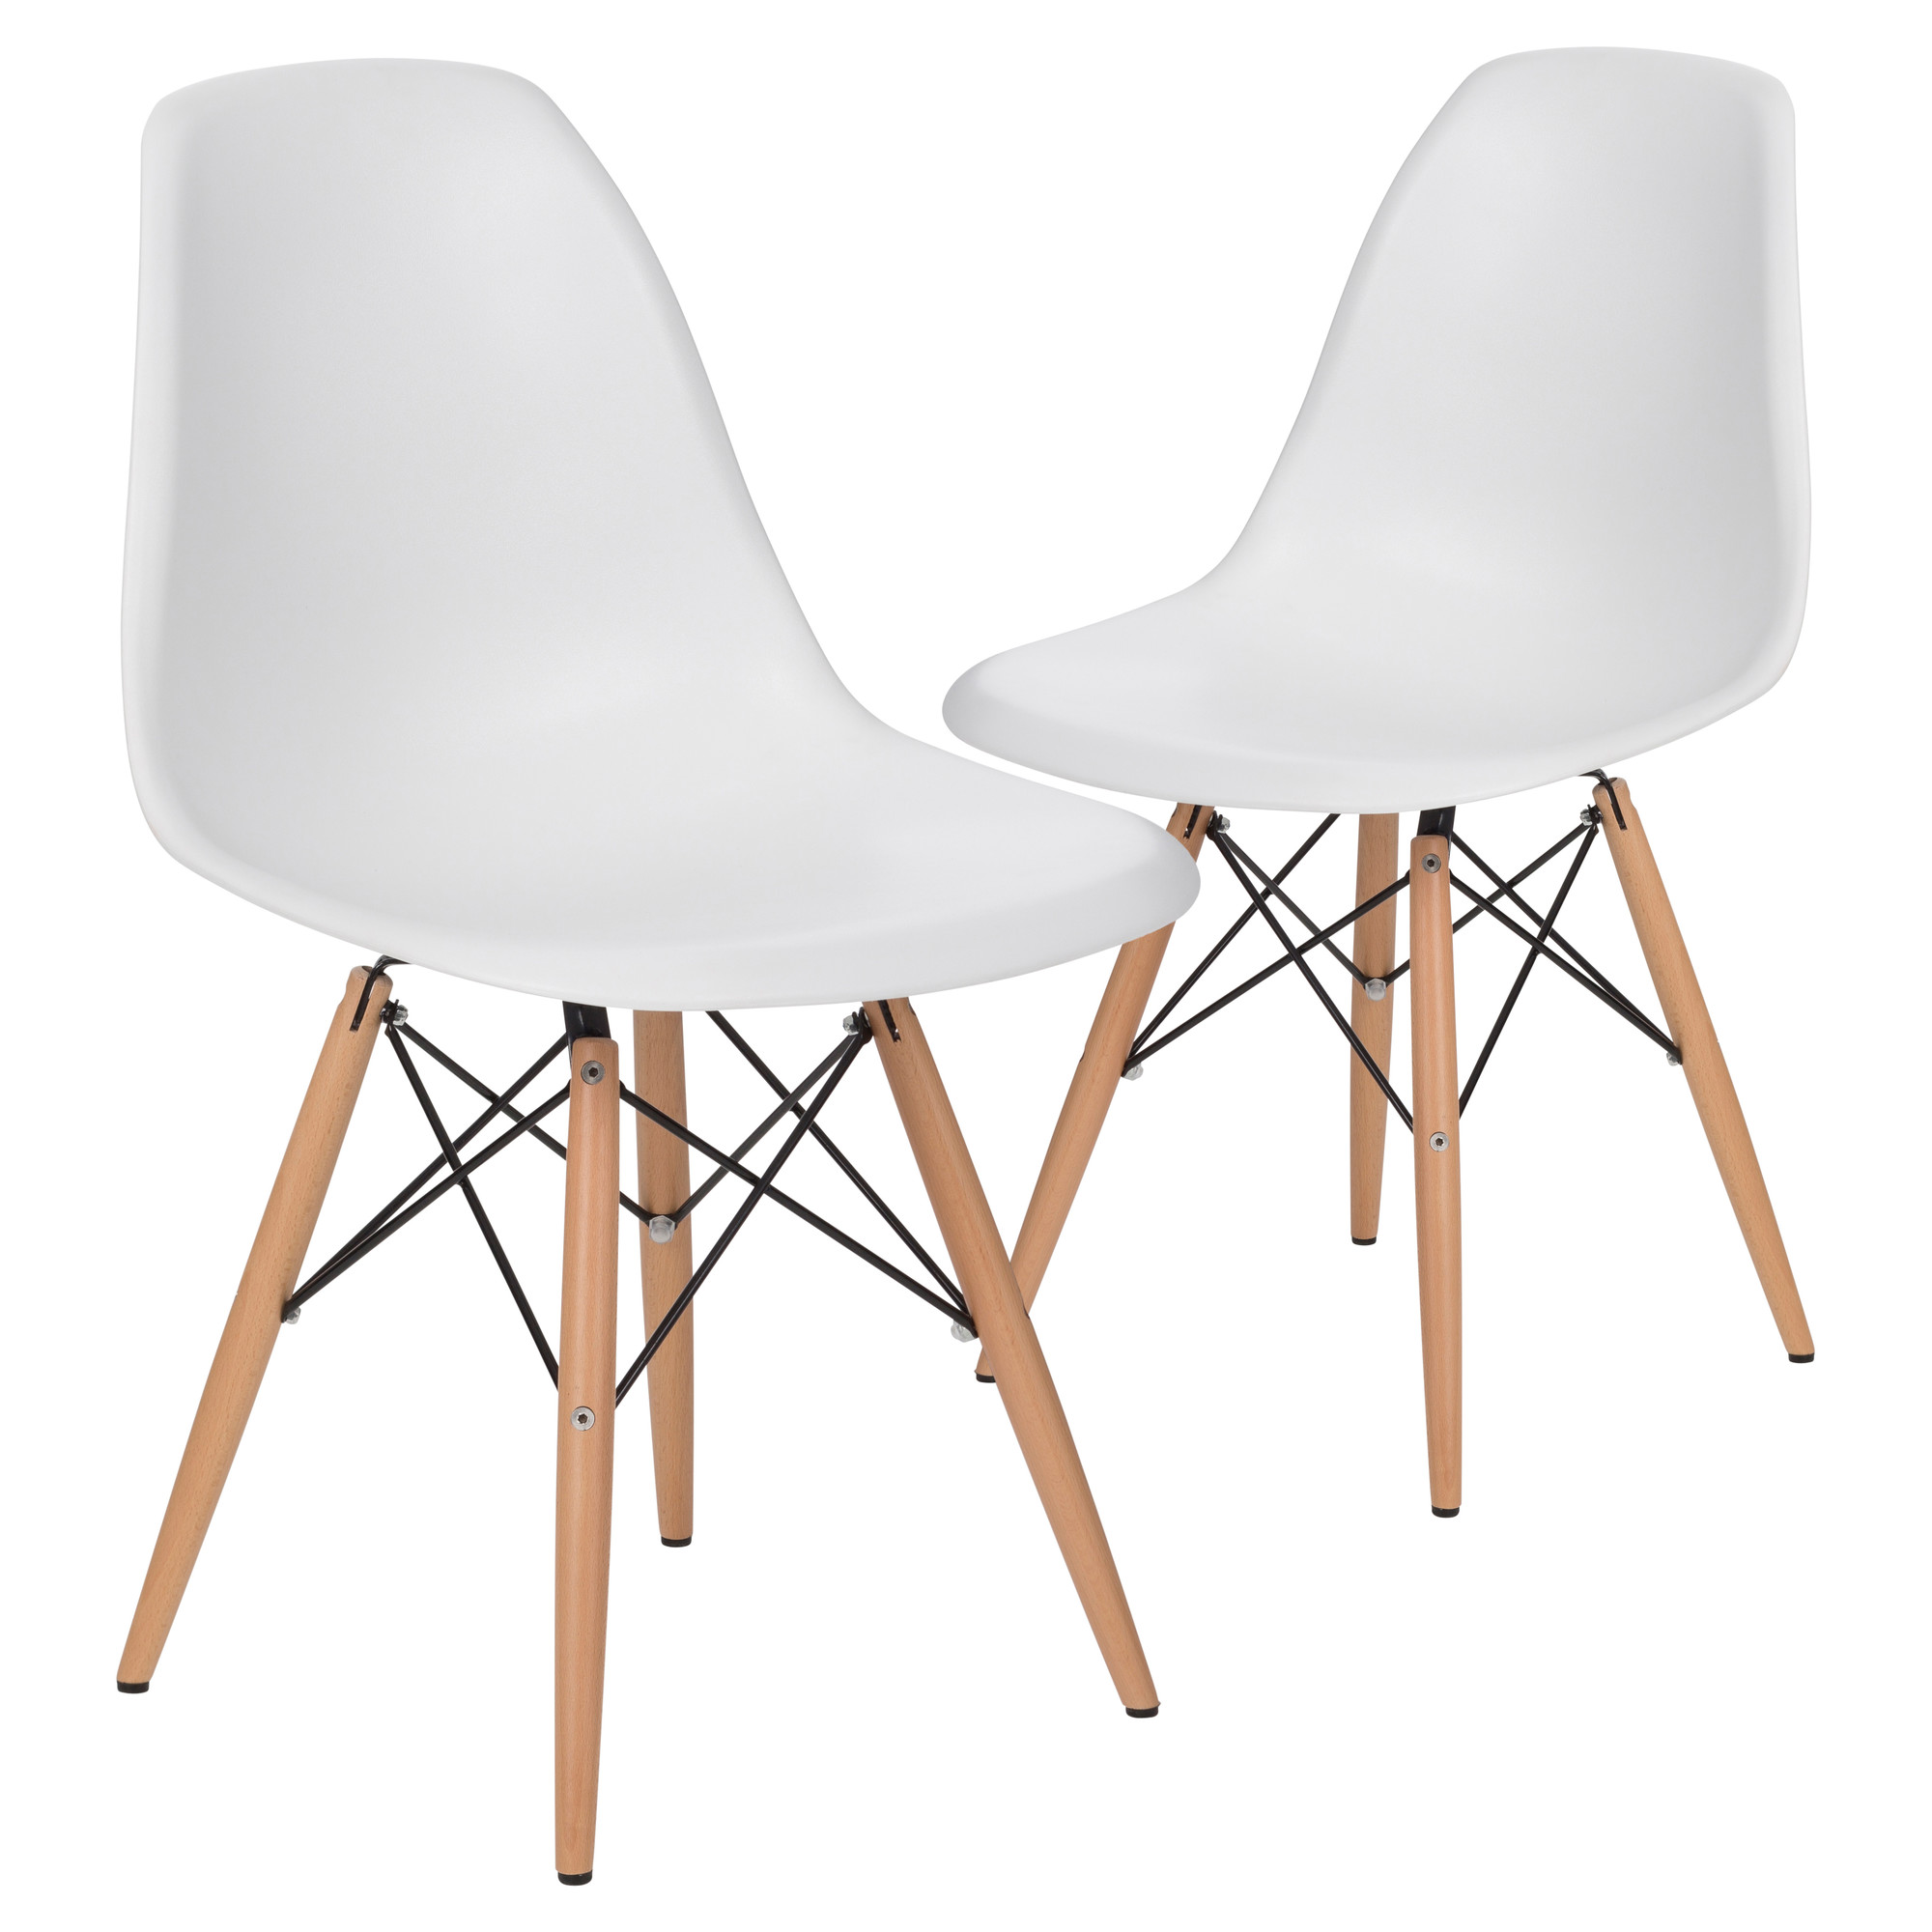 new eames replica dsw dining side chair ebay. Black Bedroom Furniture Sets. Home Design Ideas